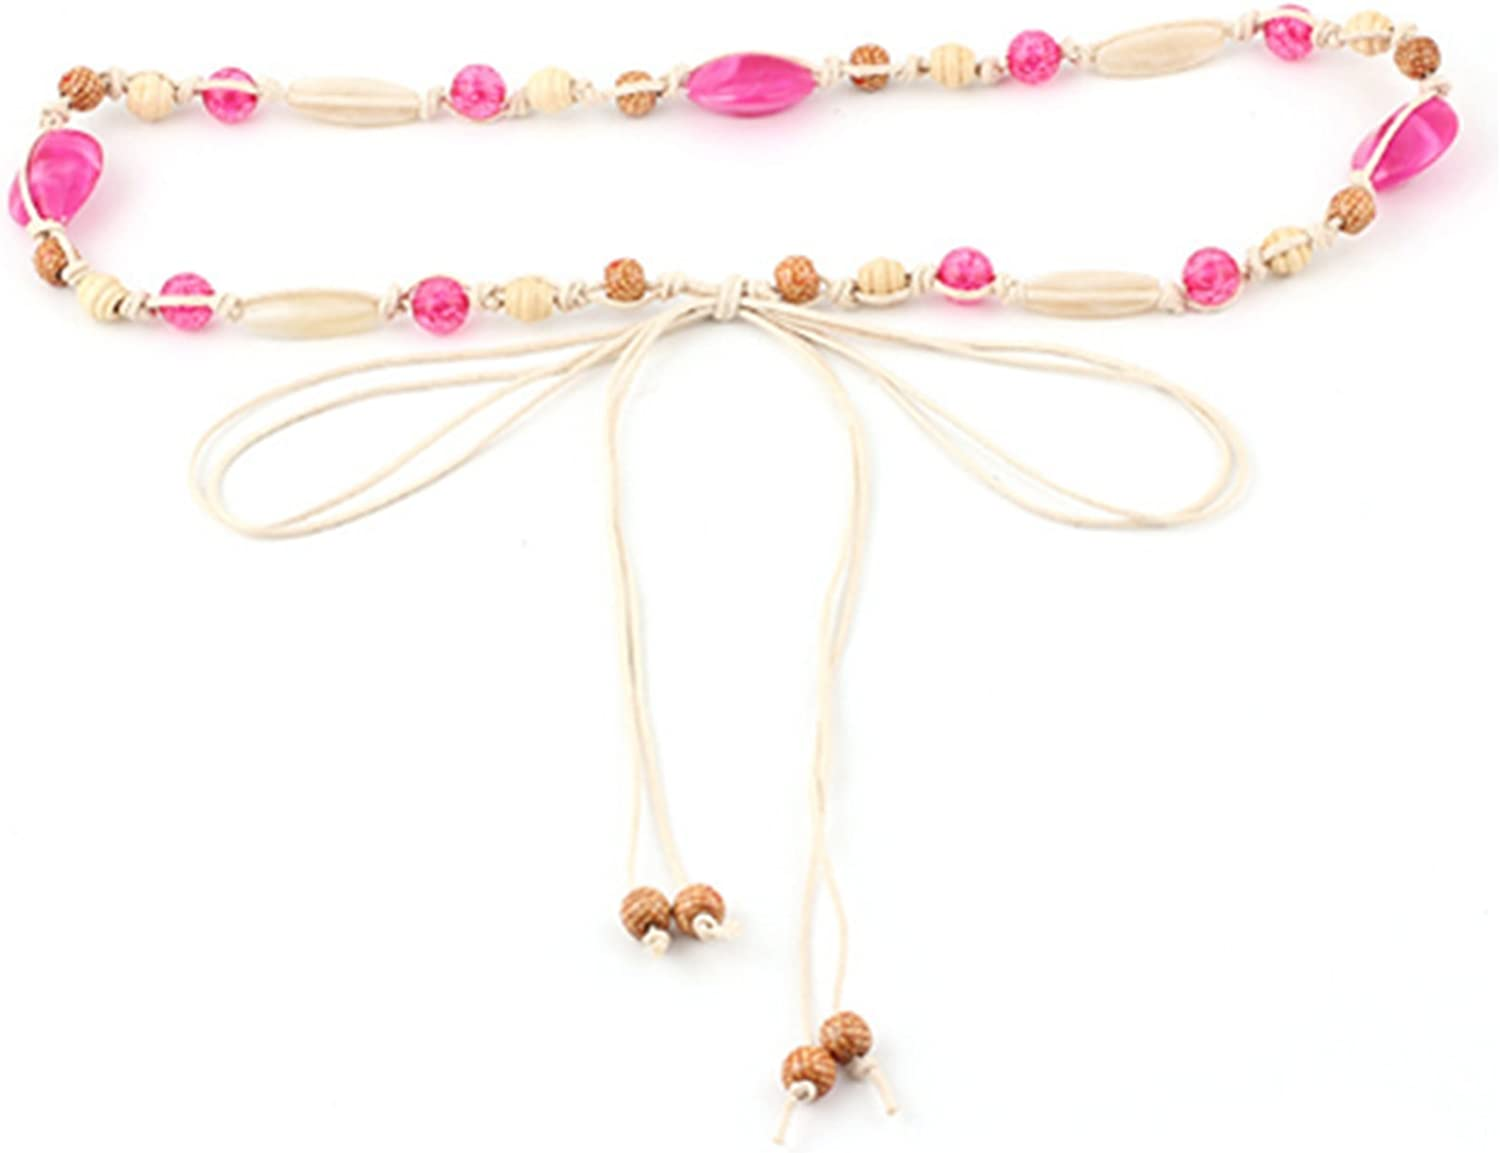 primerry Exquisite Shell Acrylic Beads Waist Rope Chain